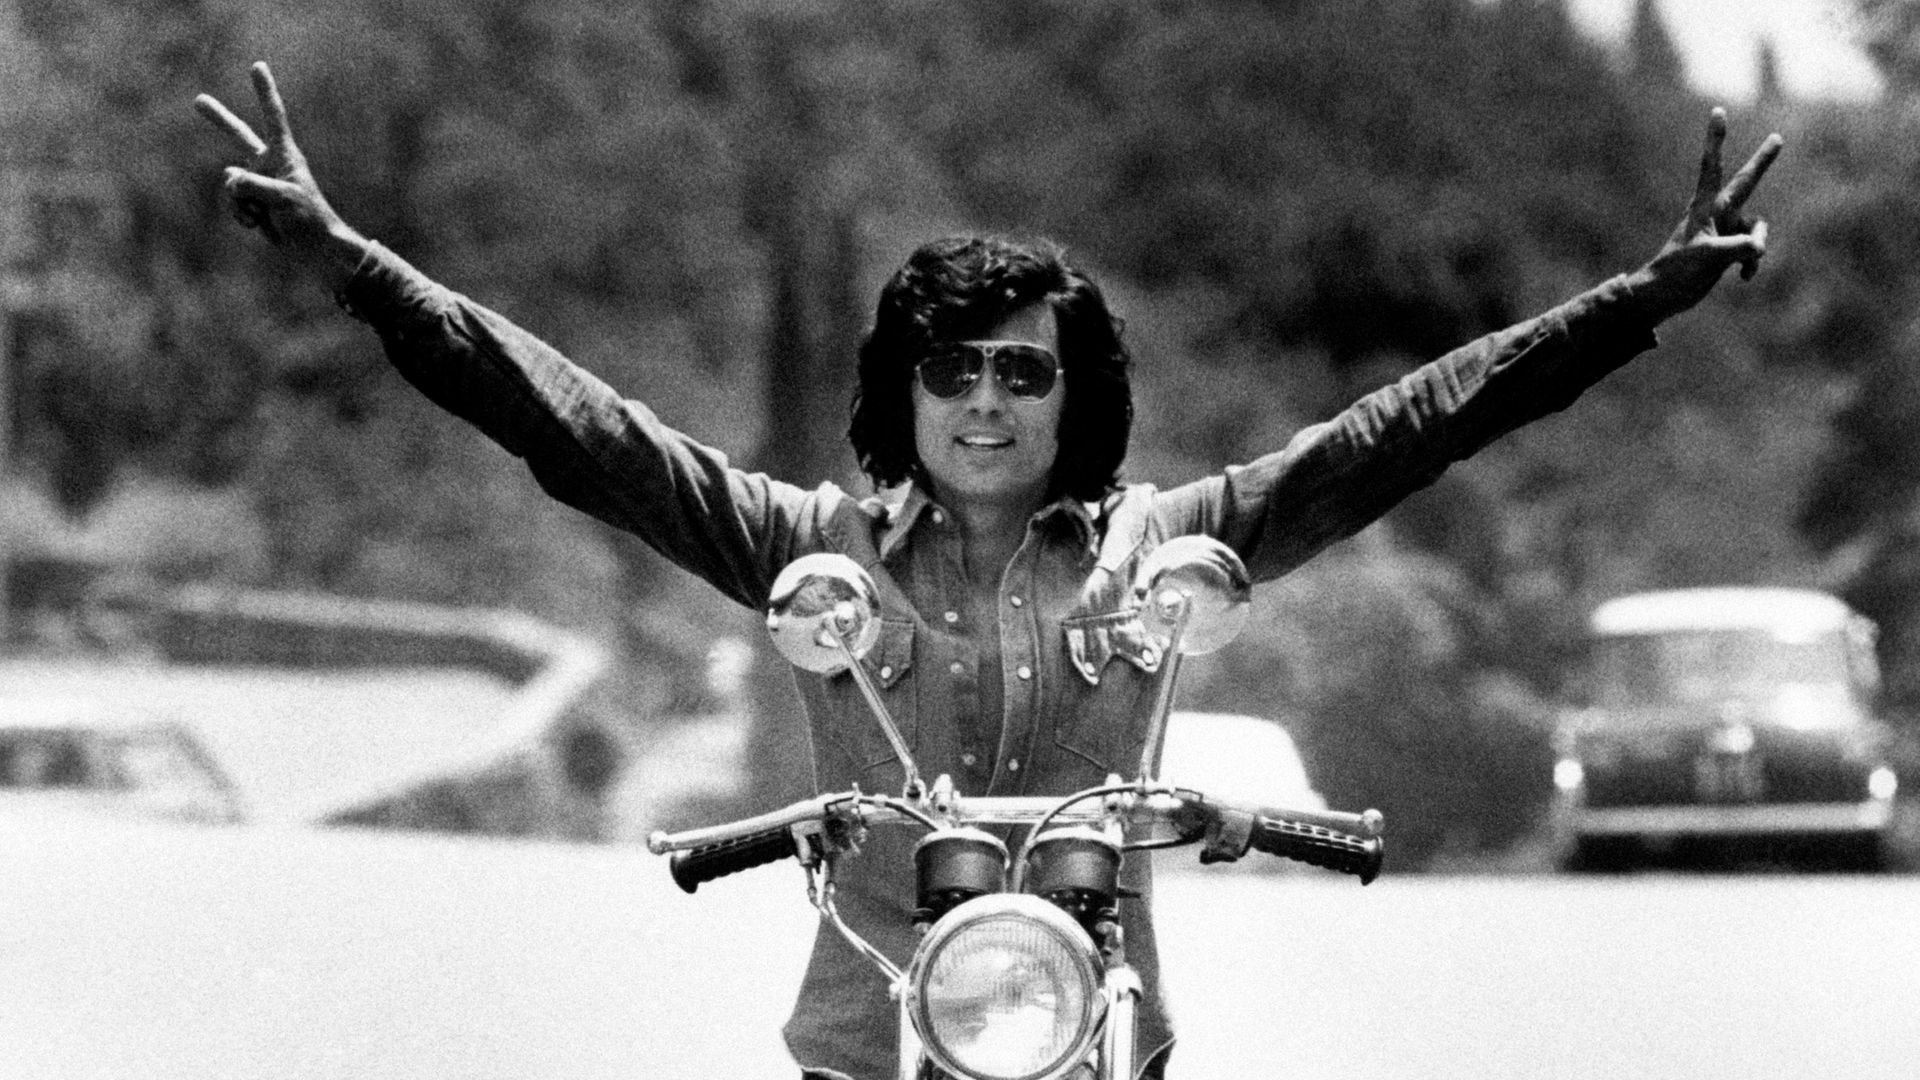 The Sammarinese singer Little Tony, born Antonio Ciacci, poses on a motorbike with open arms. - Credit: Mondadori via Getty Images